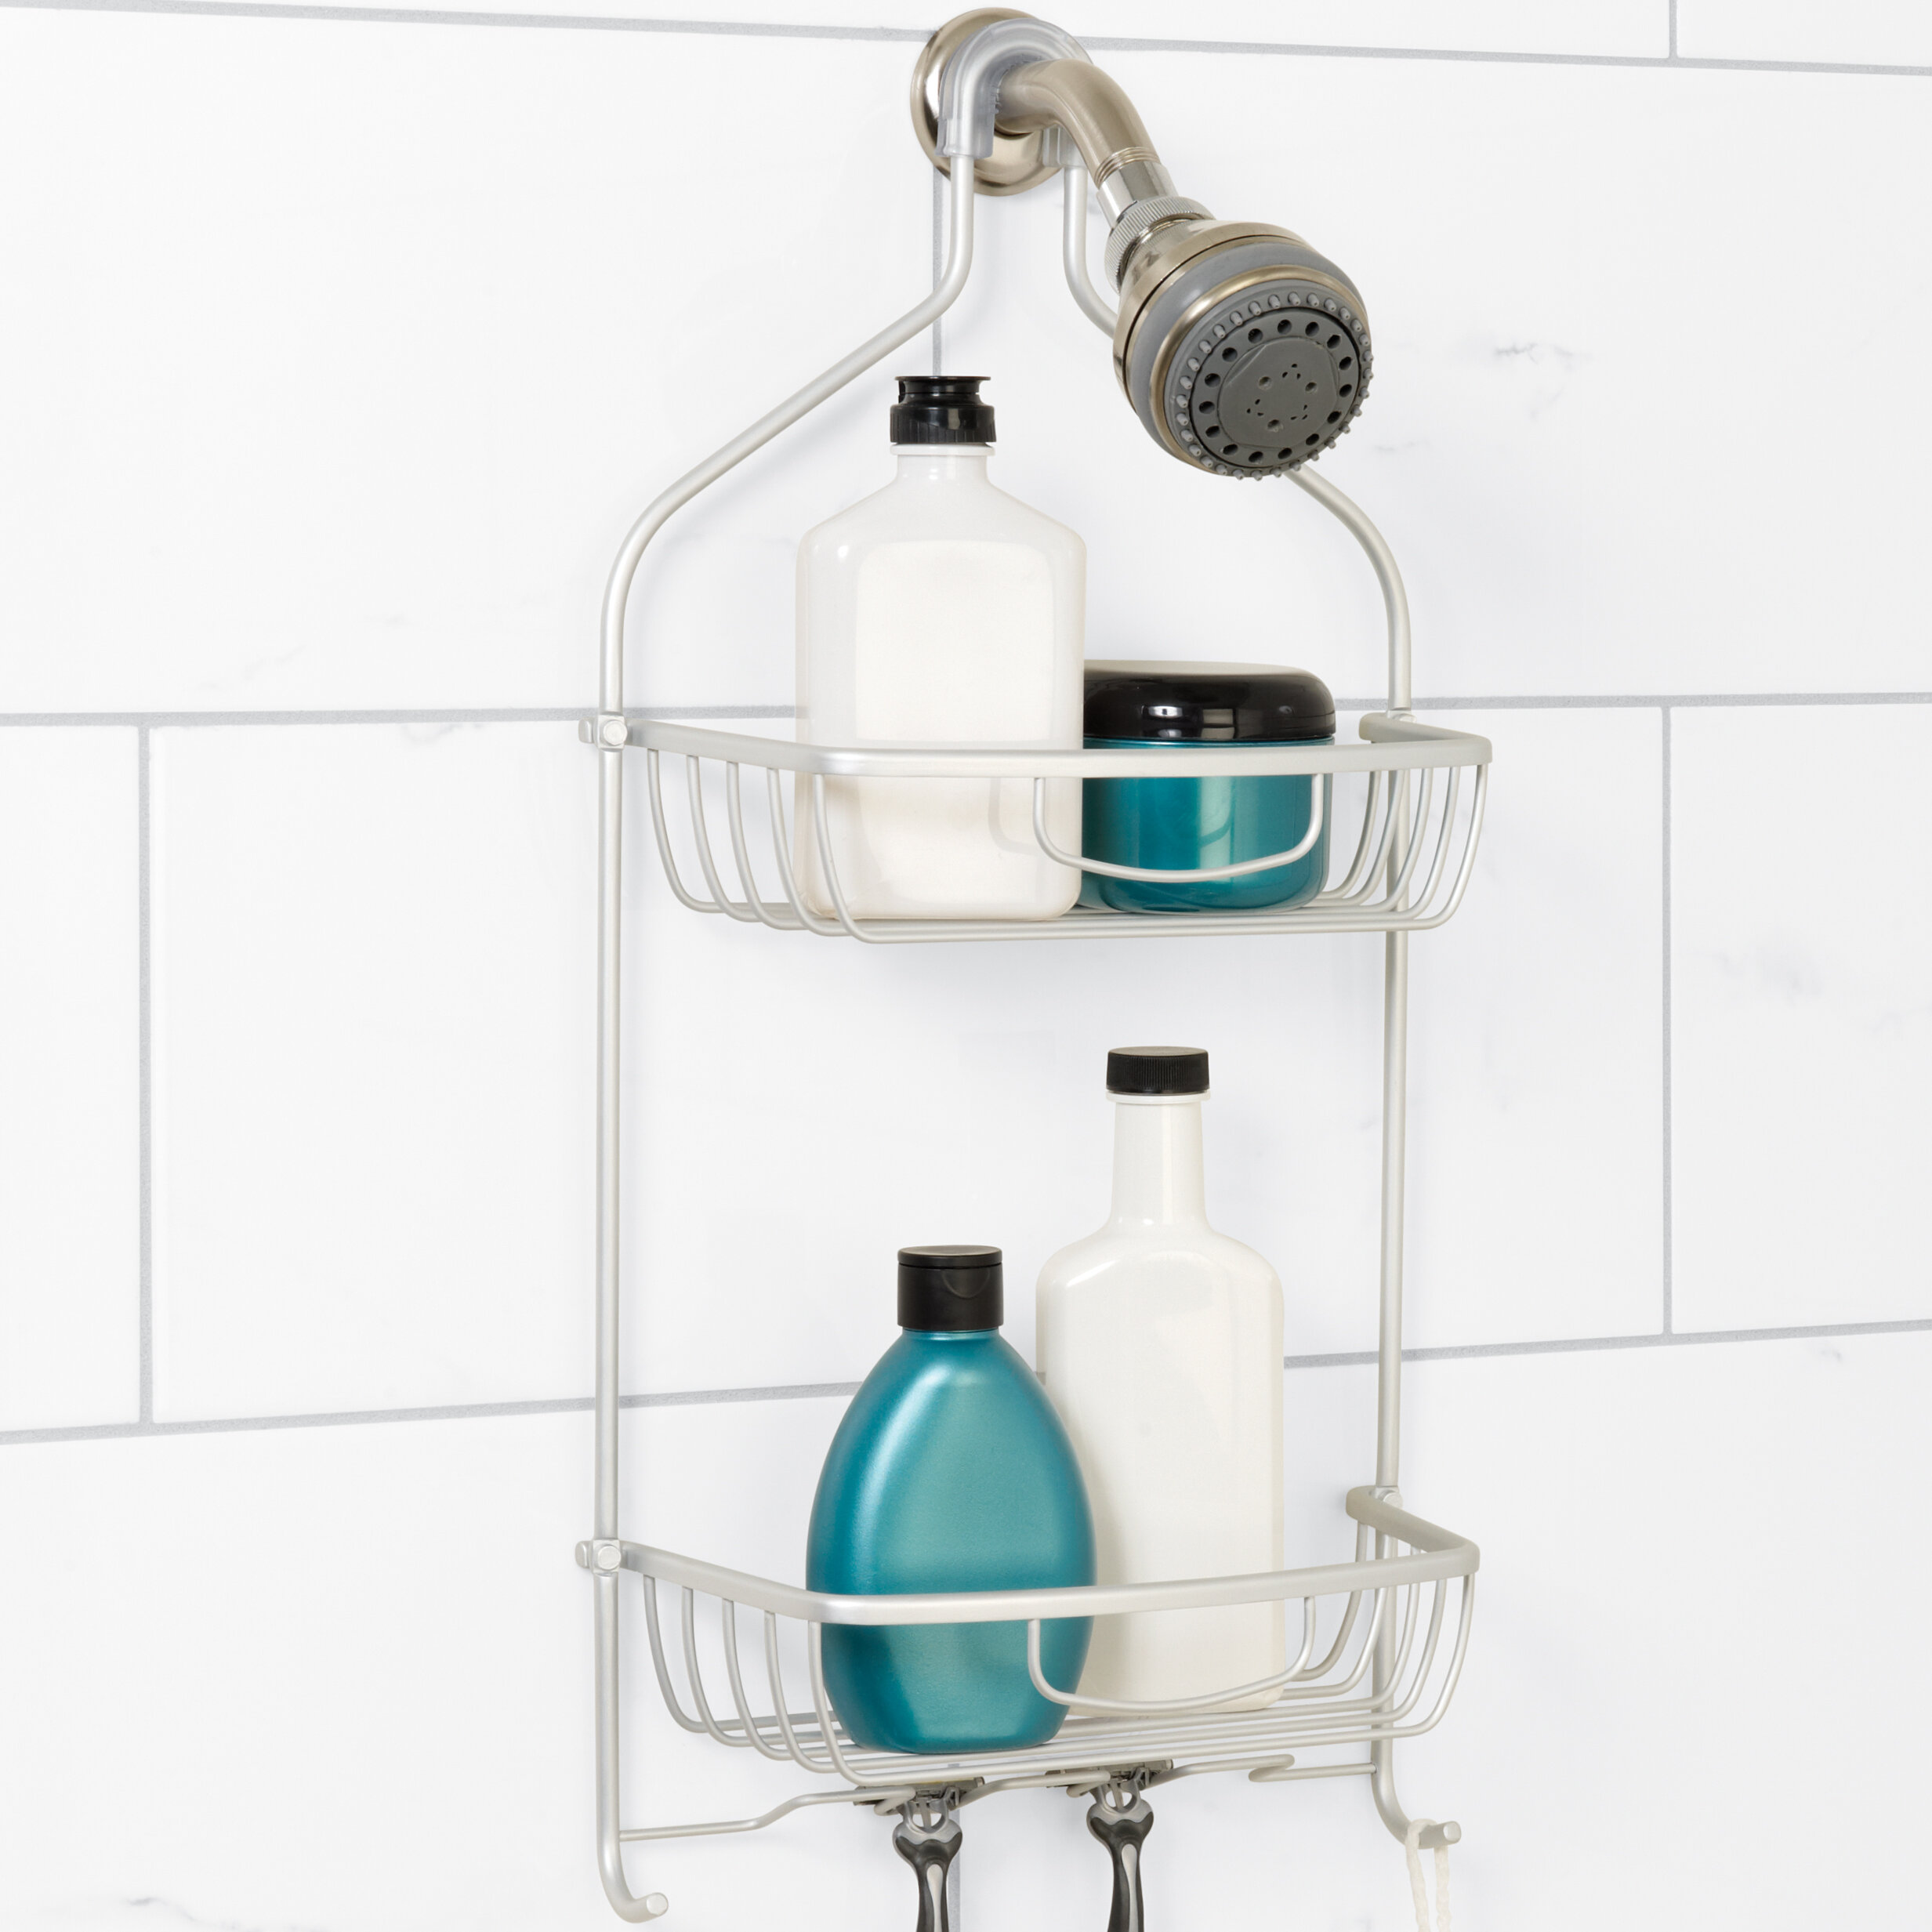 Versalot Never Rust Shower Caddy & Reviews | Wayfair